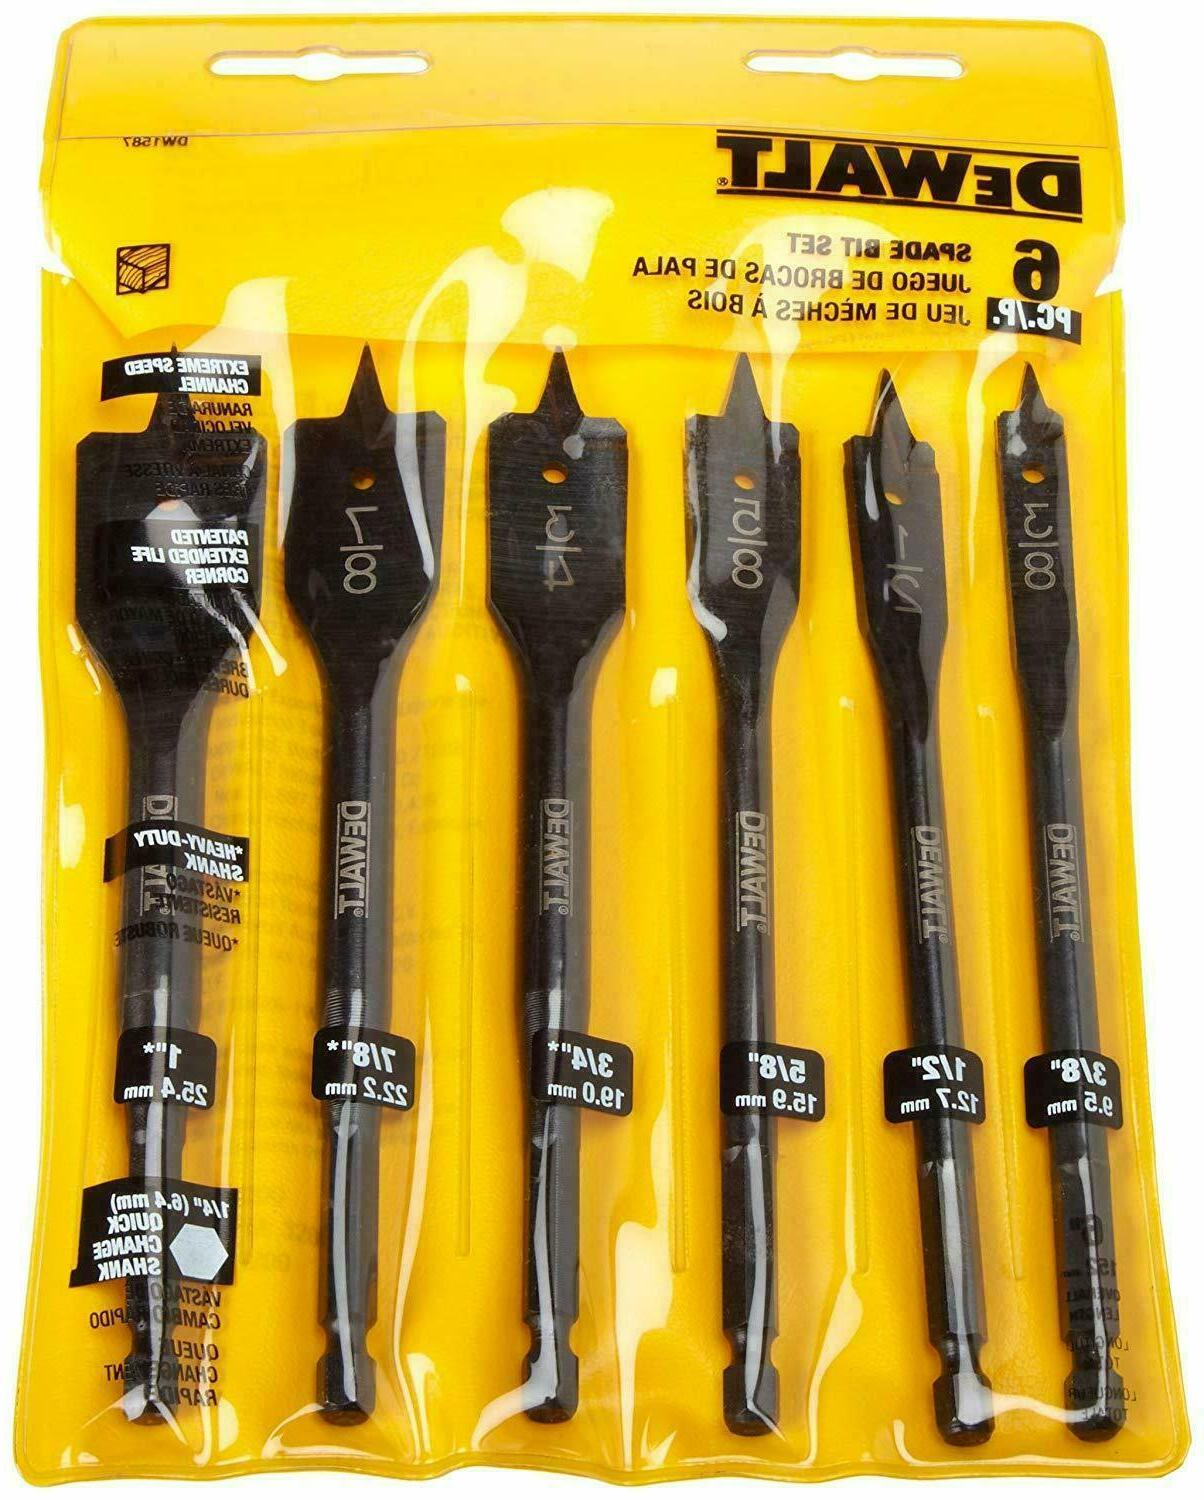 DEWALT DW1587 Bit 3/8-Inch to 1-Inch Drill Assortment